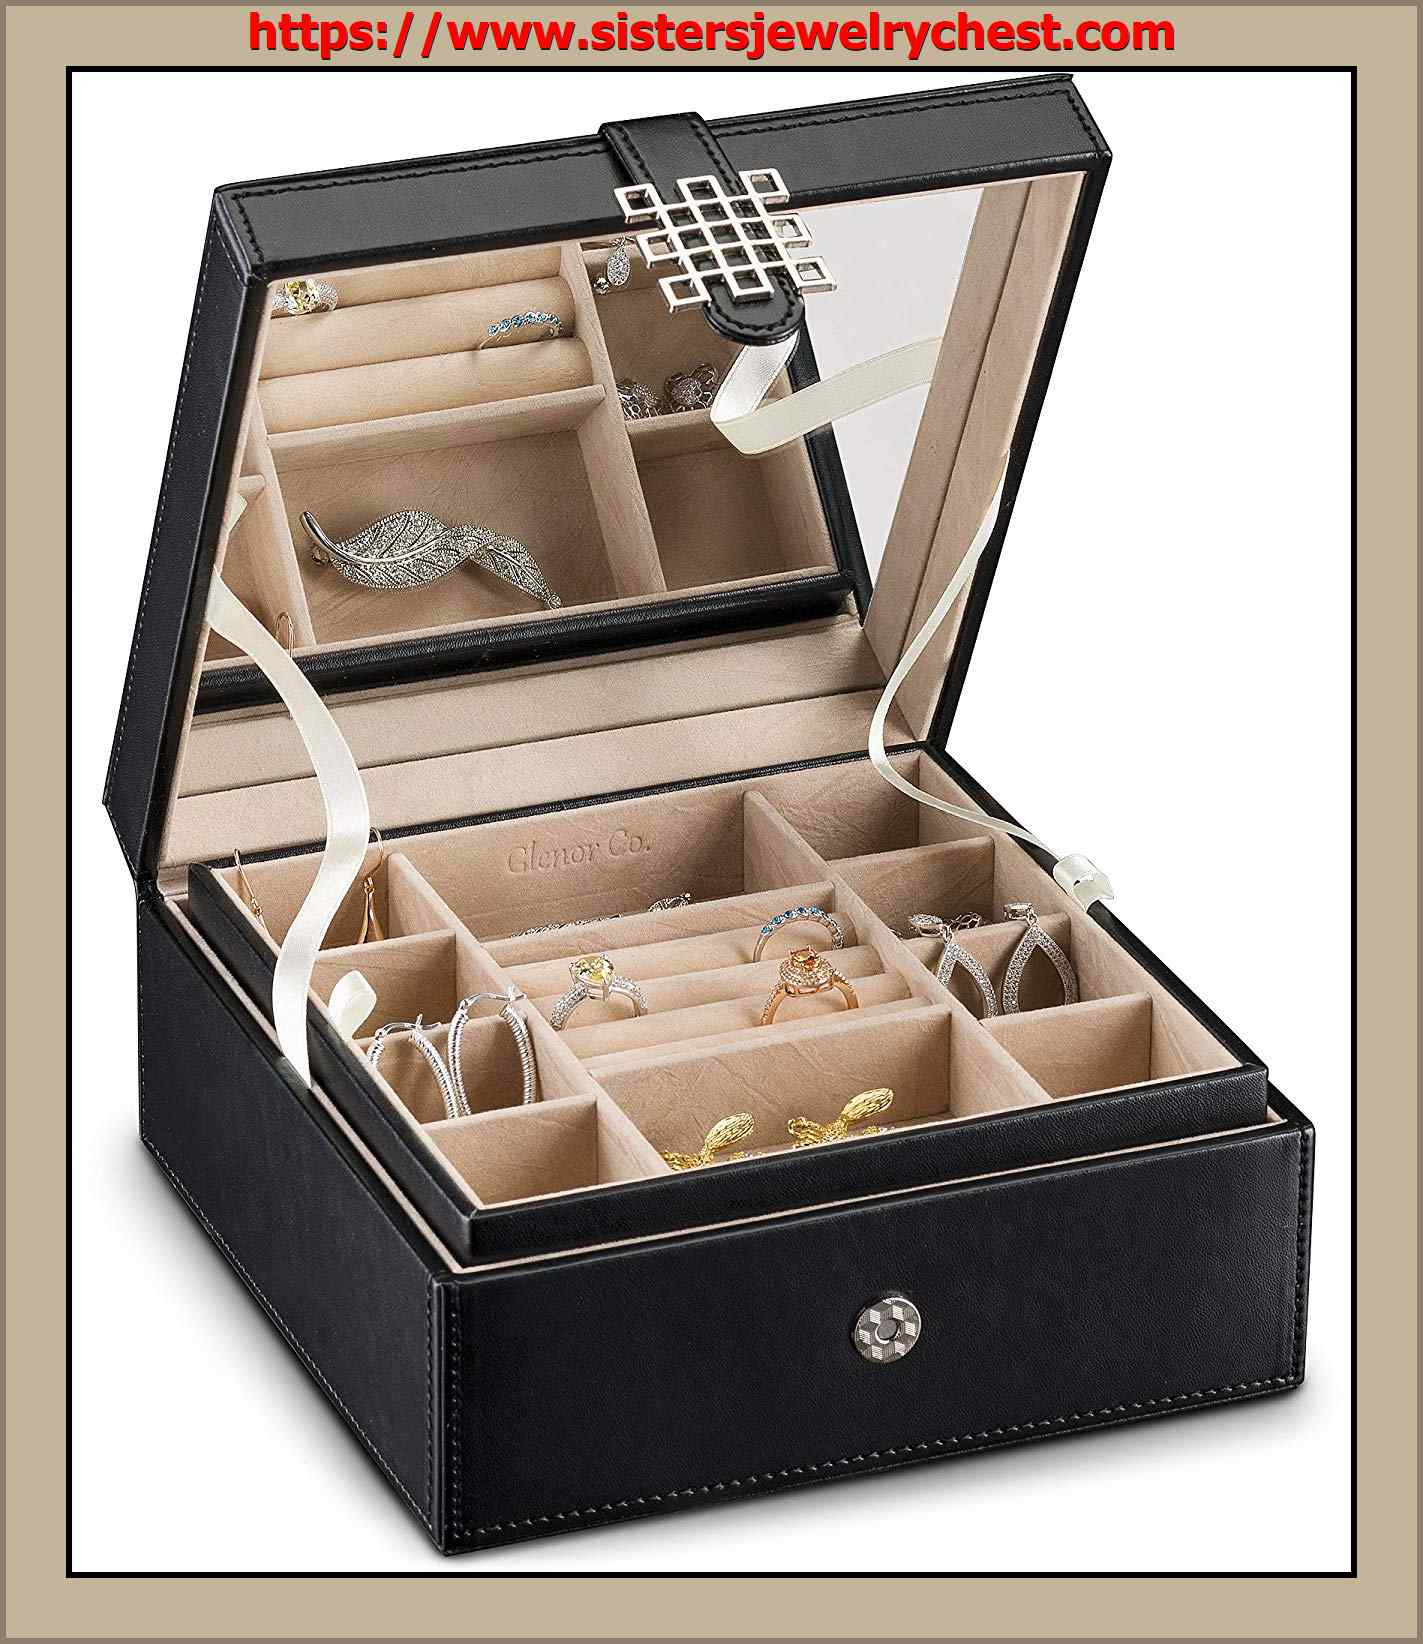 68ee52674 Glenor Co Jewelry Box Organizer - 17 Slot Small Classic Holder with ...